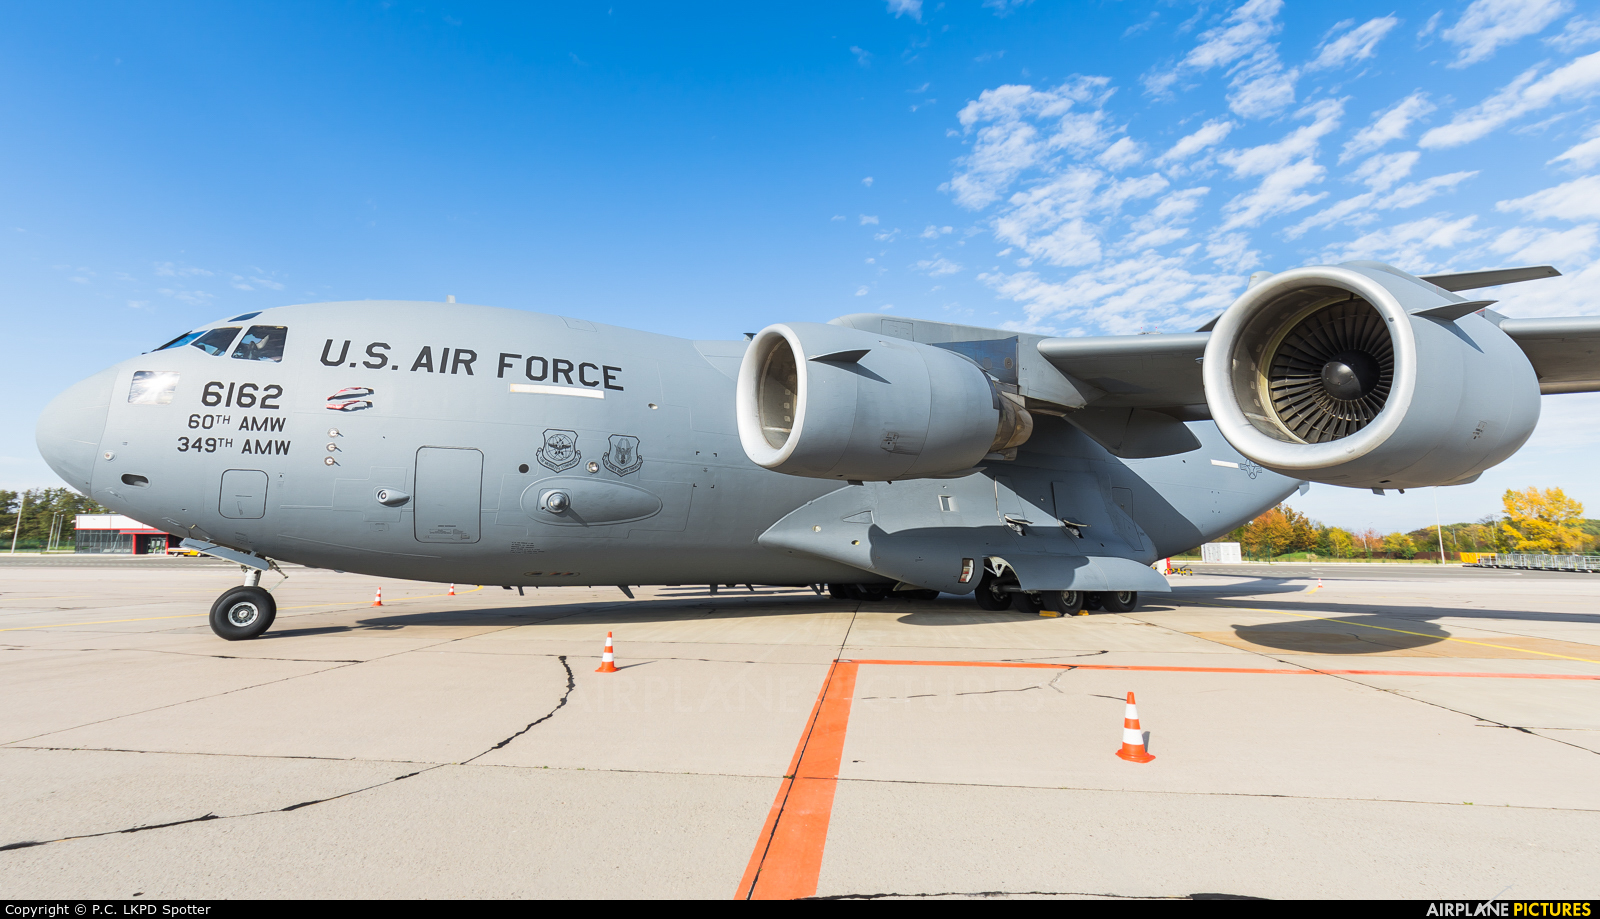 USA - Air Force 06-6162 aircraft at Pardubice